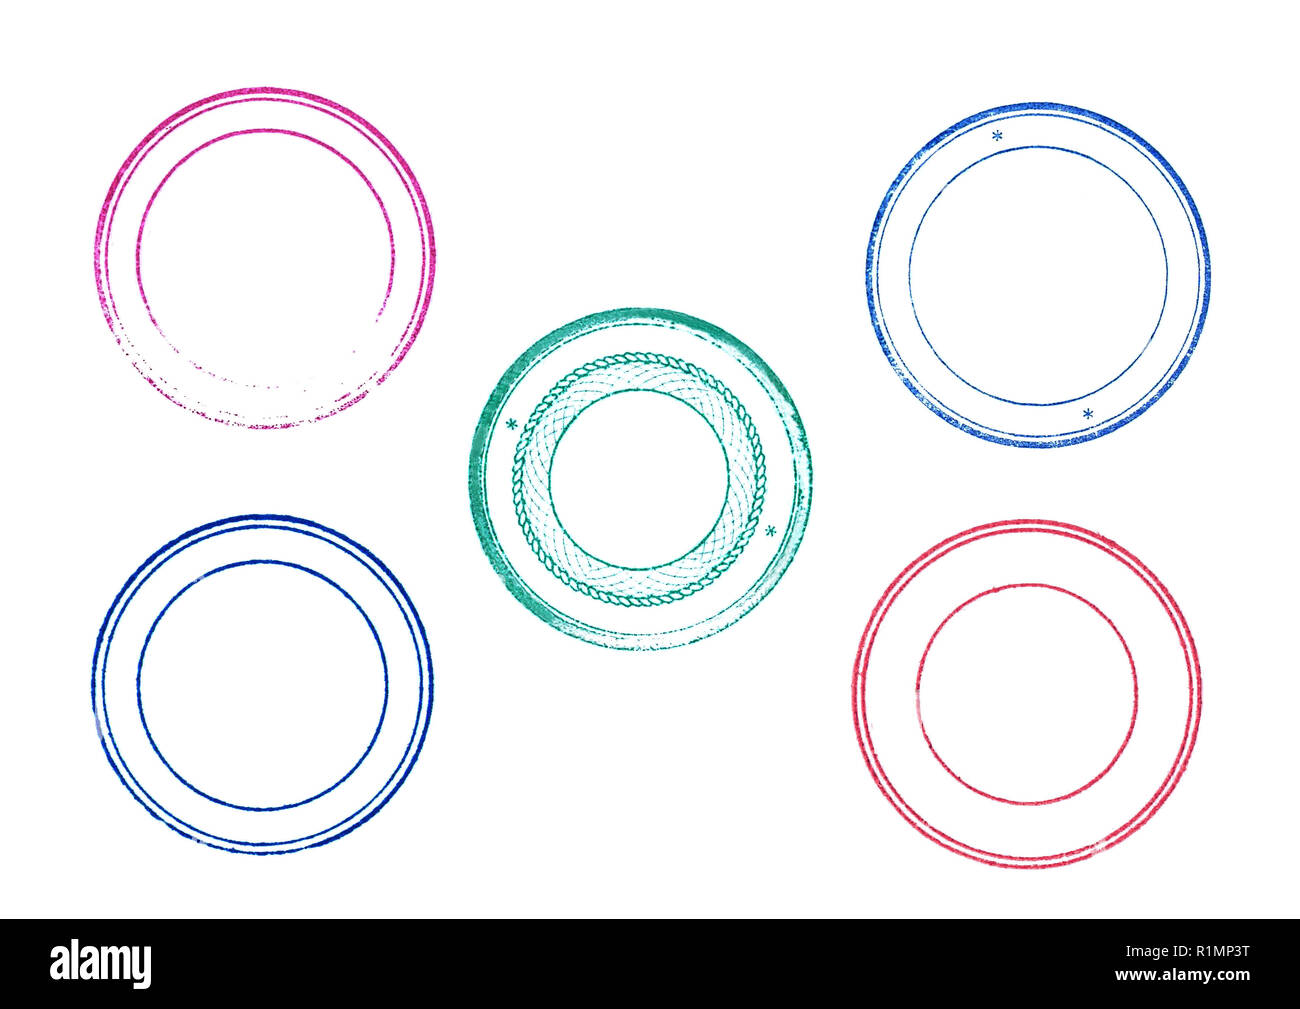 round stamp cut out stock images pictures alamy